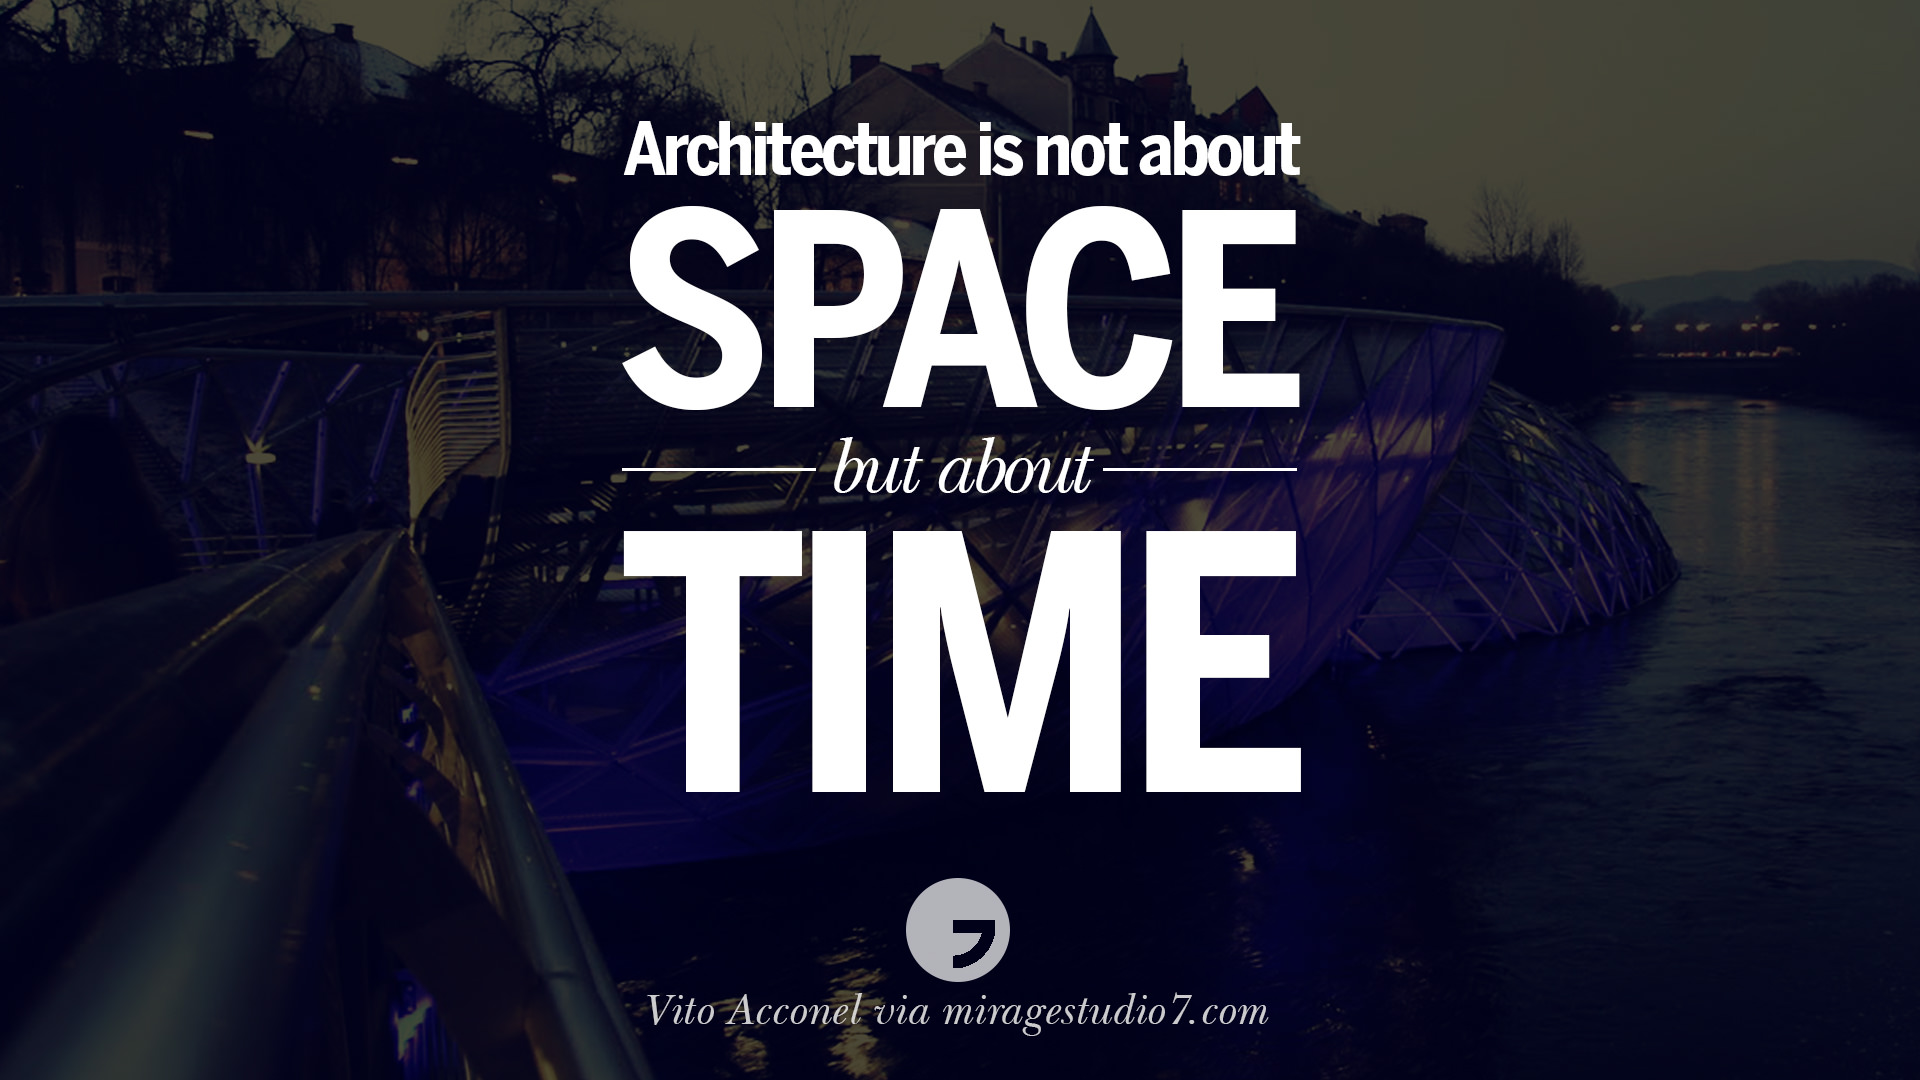 4 Inspirational Architecture Quotes by Famous Architects and